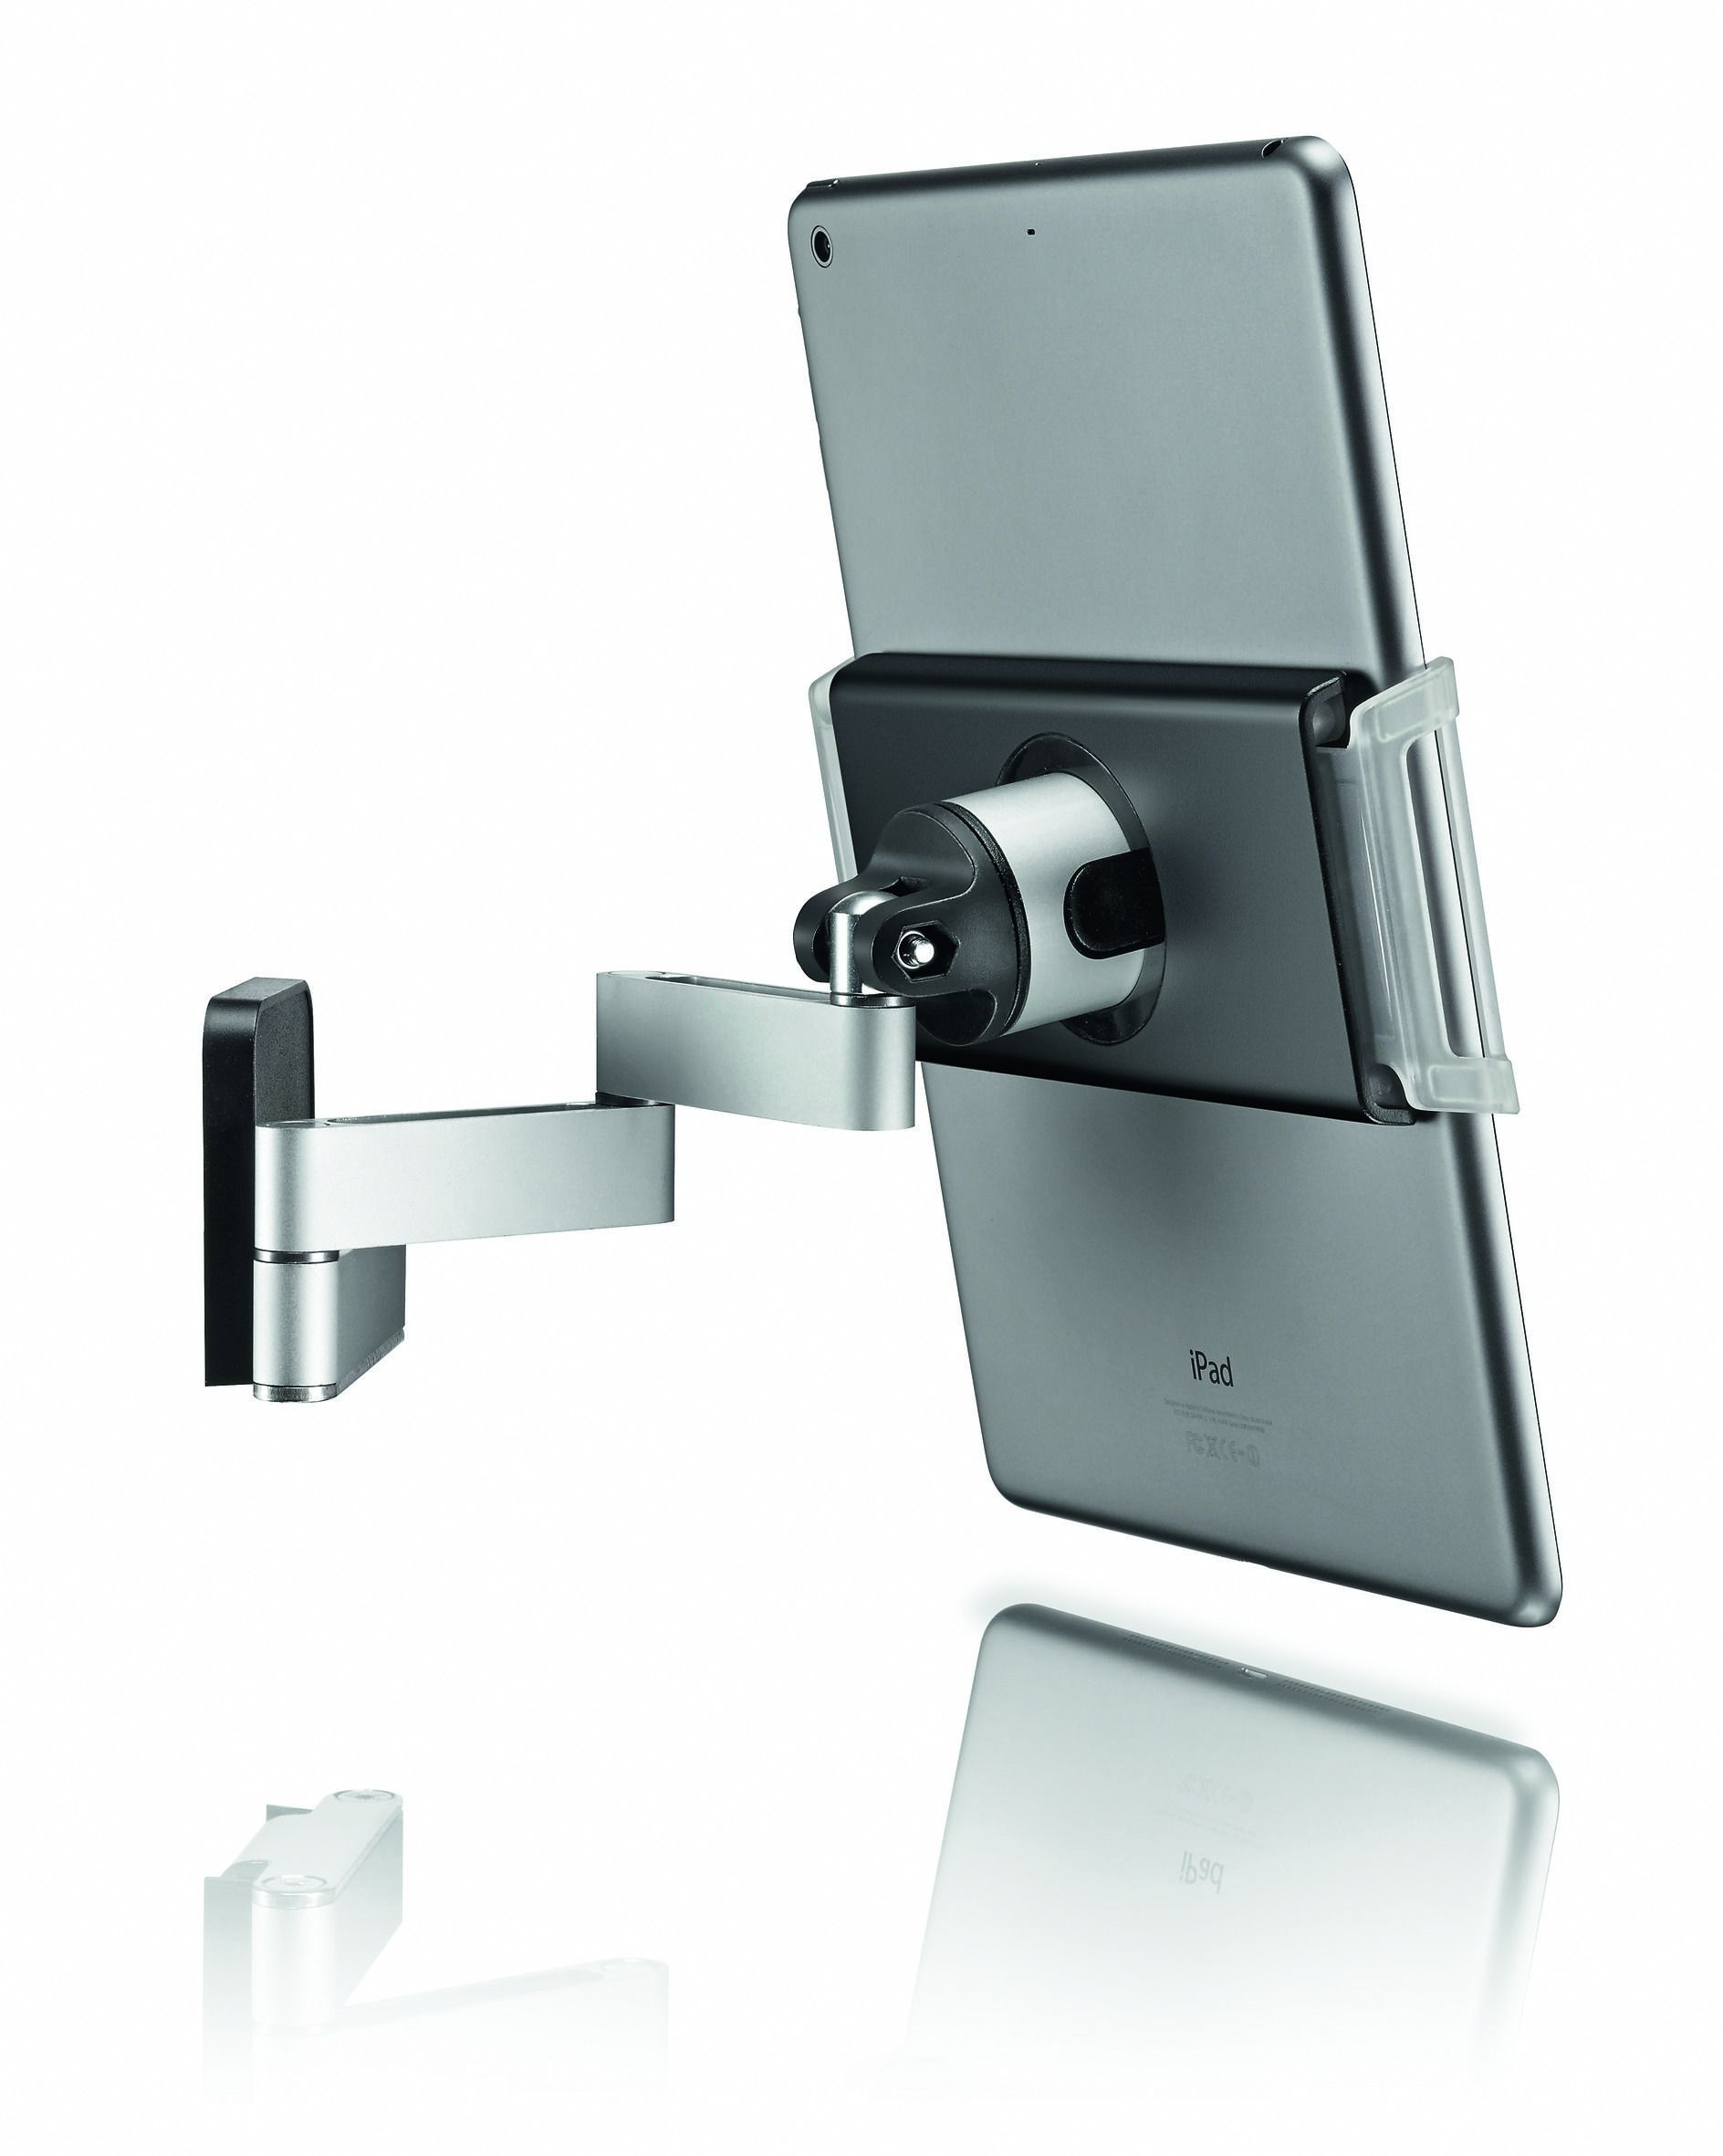 Vogel S Tms 1030 Support Mural Tablette Orientable